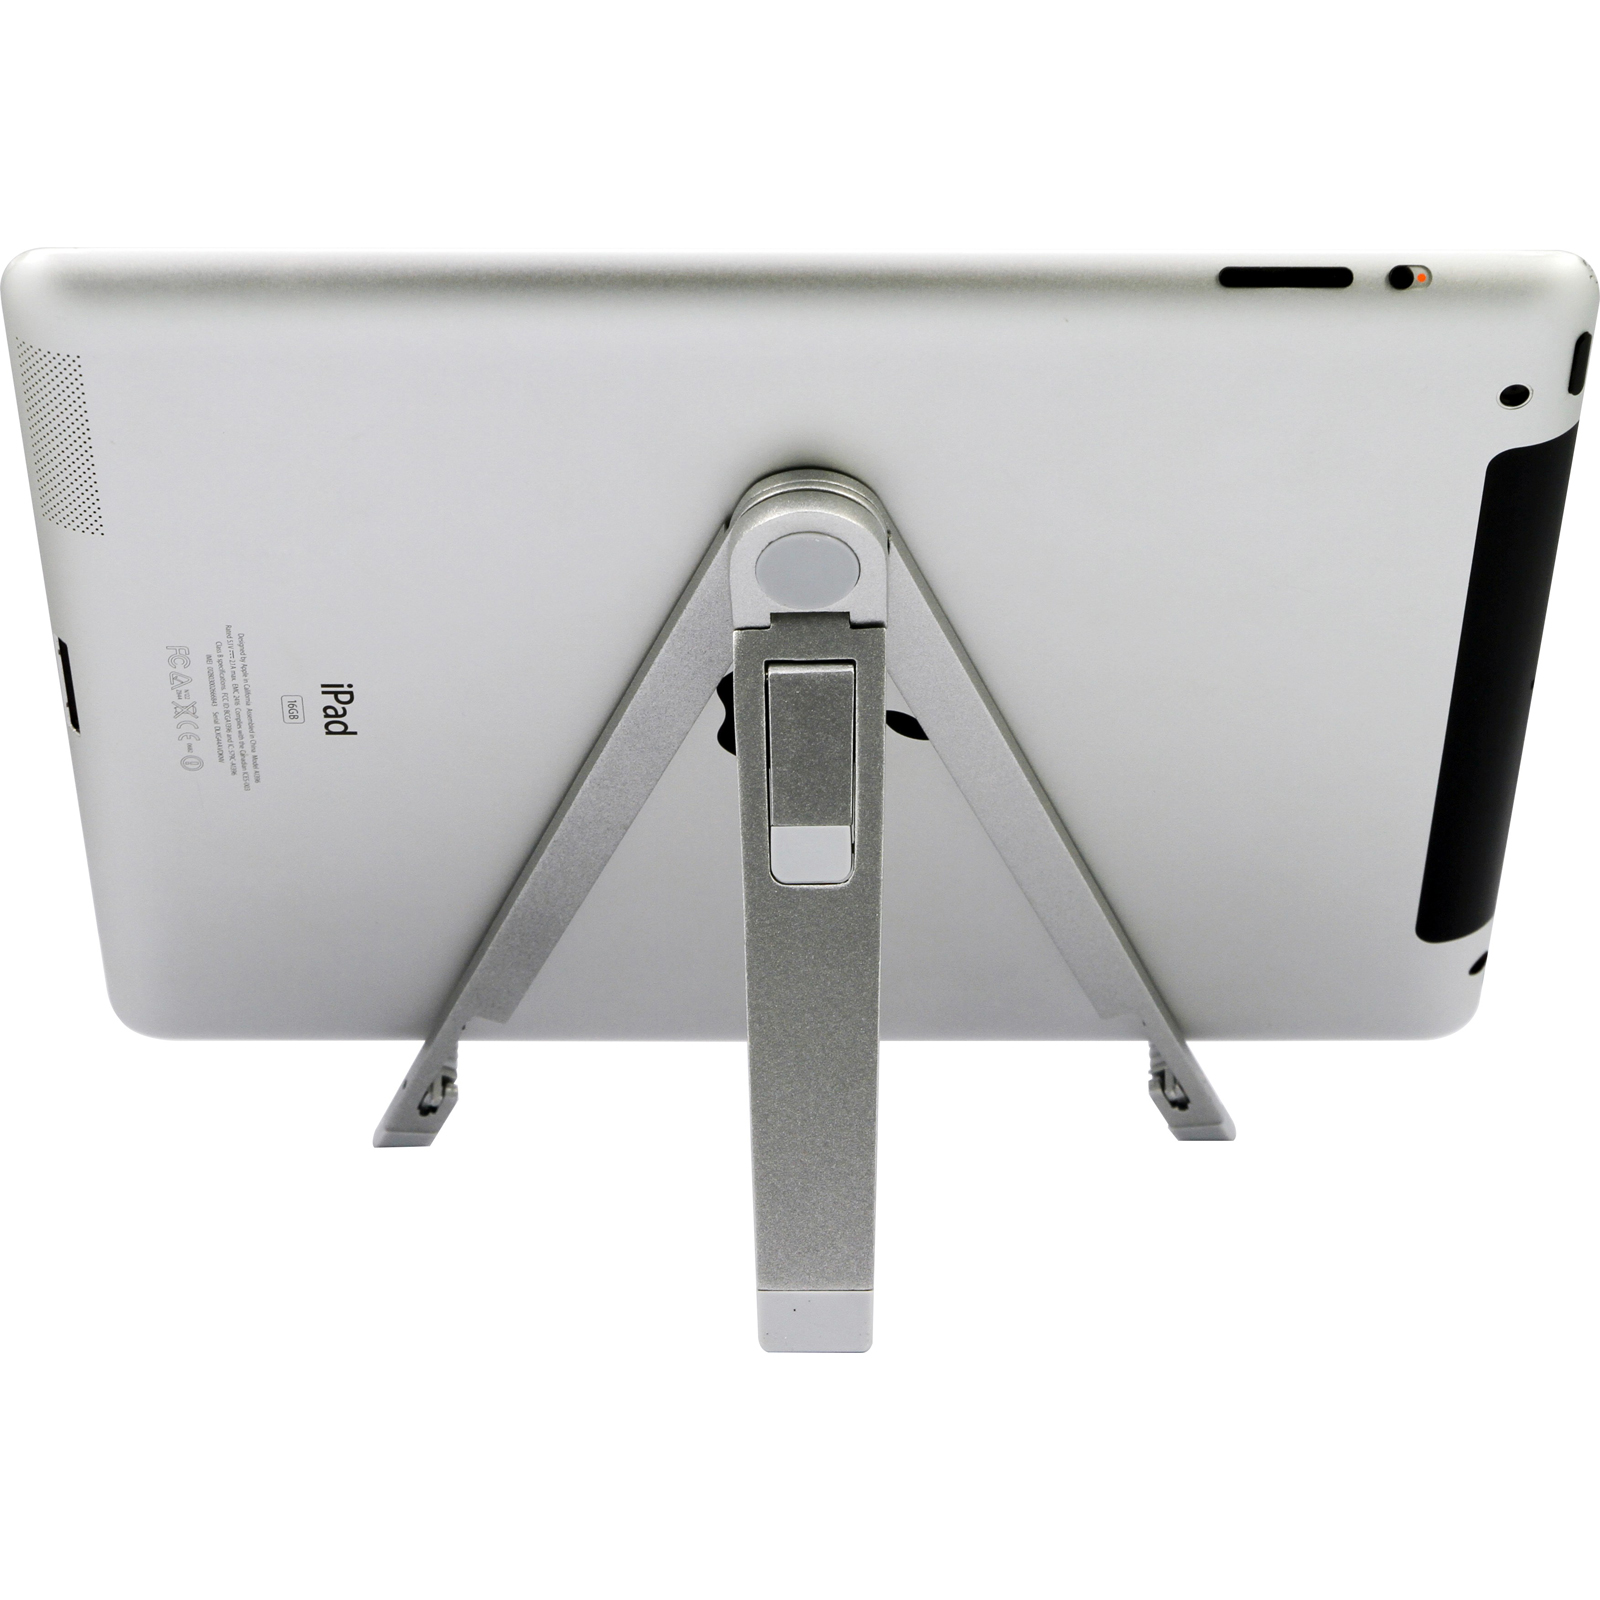 WOW Aluminum Tripod Stand for Tablets